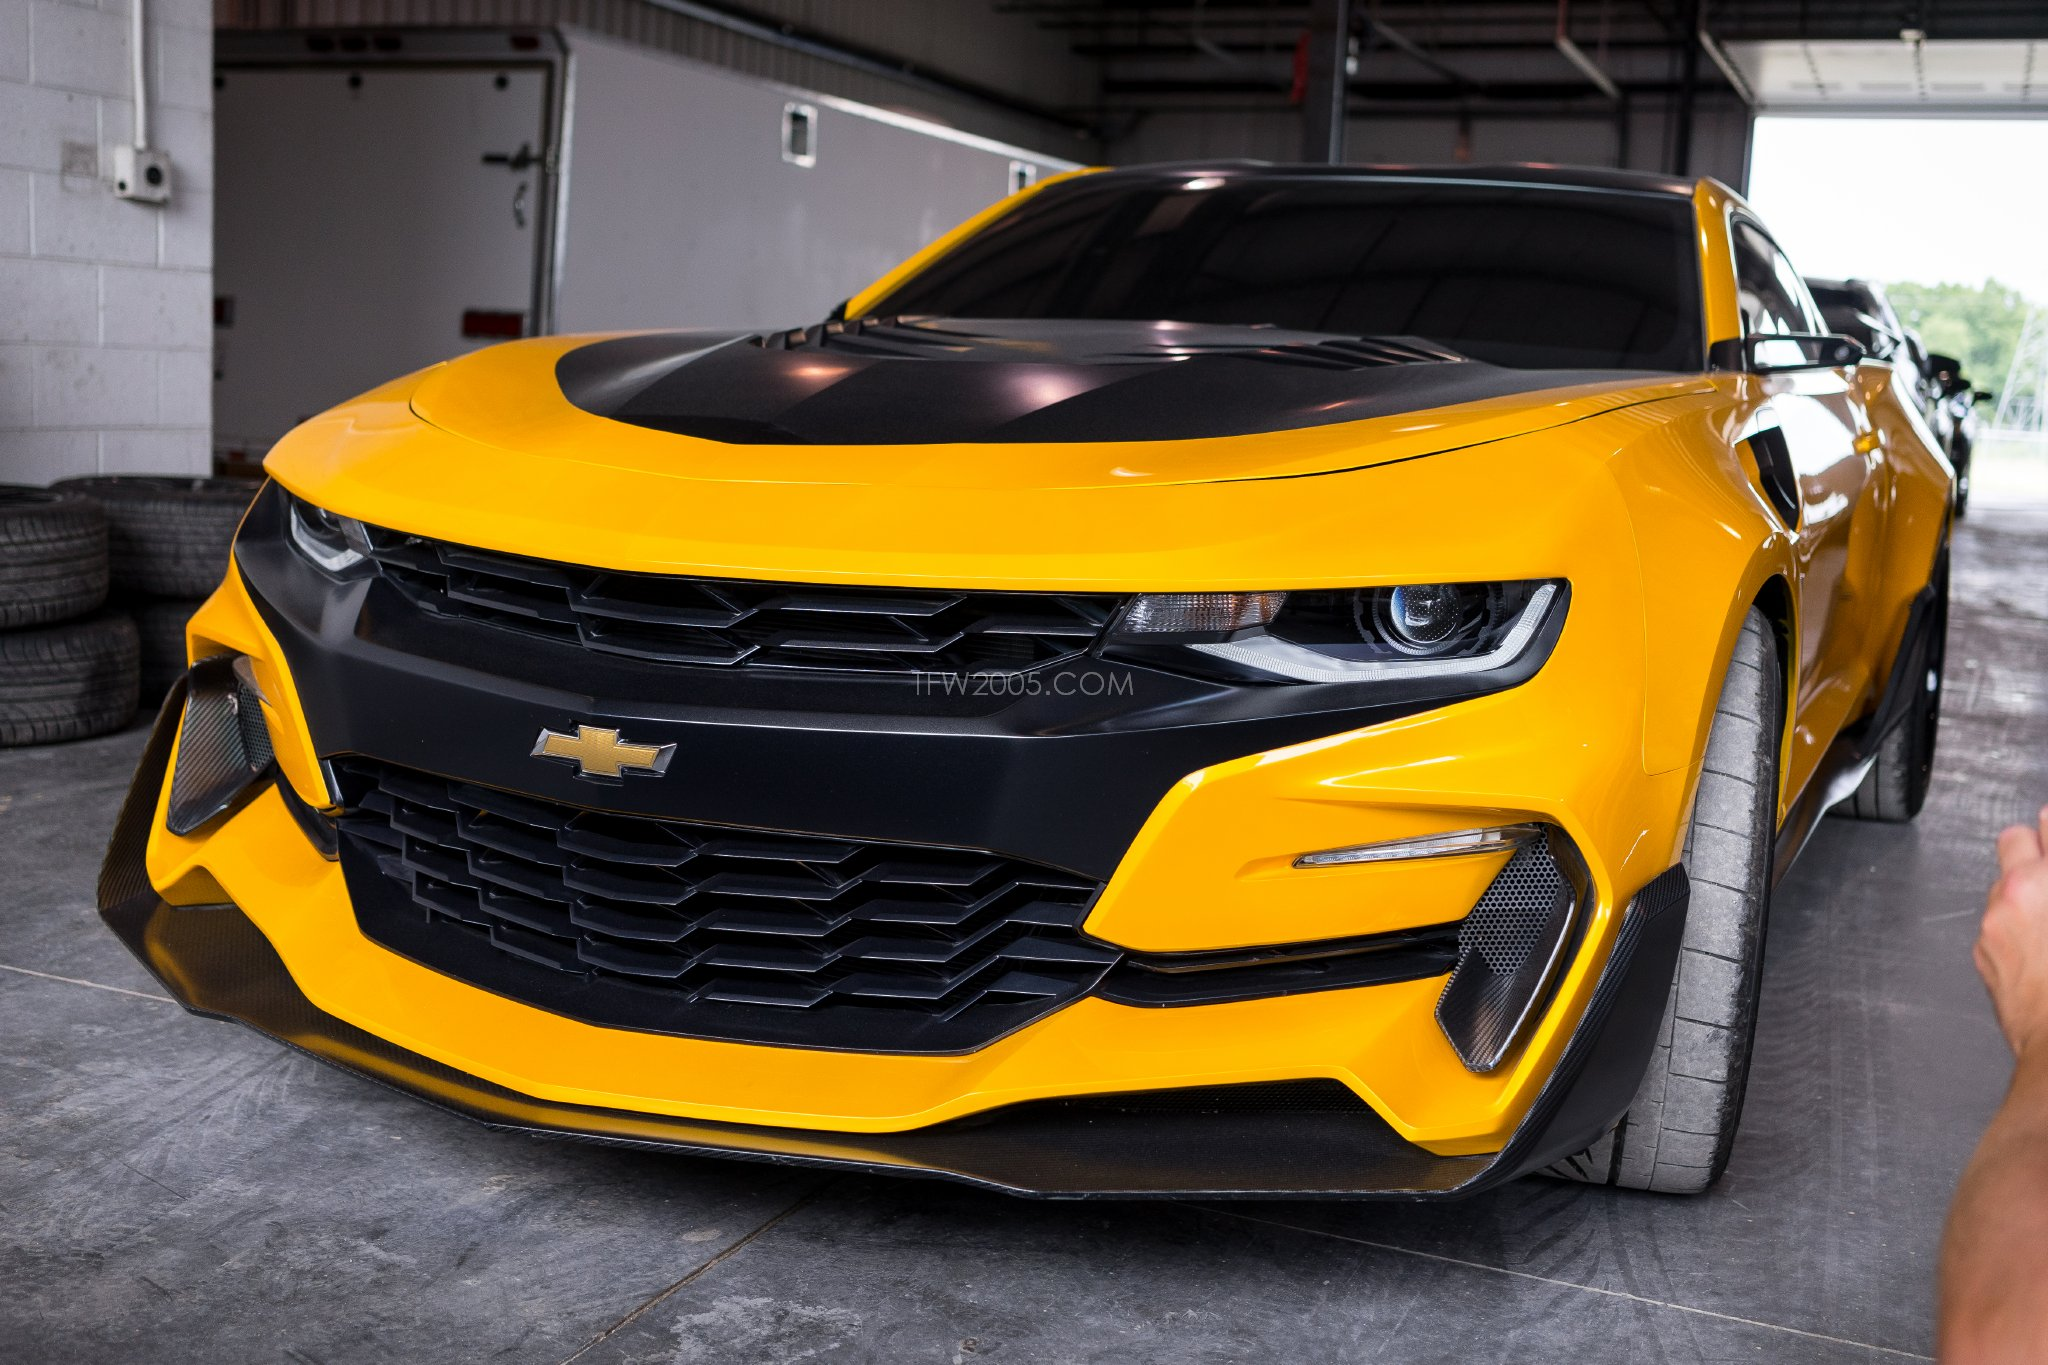 how bumblebee helped chevrolet in philippines transformers news tfw2005. Black Bedroom Furniture Sets. Home Design Ideas